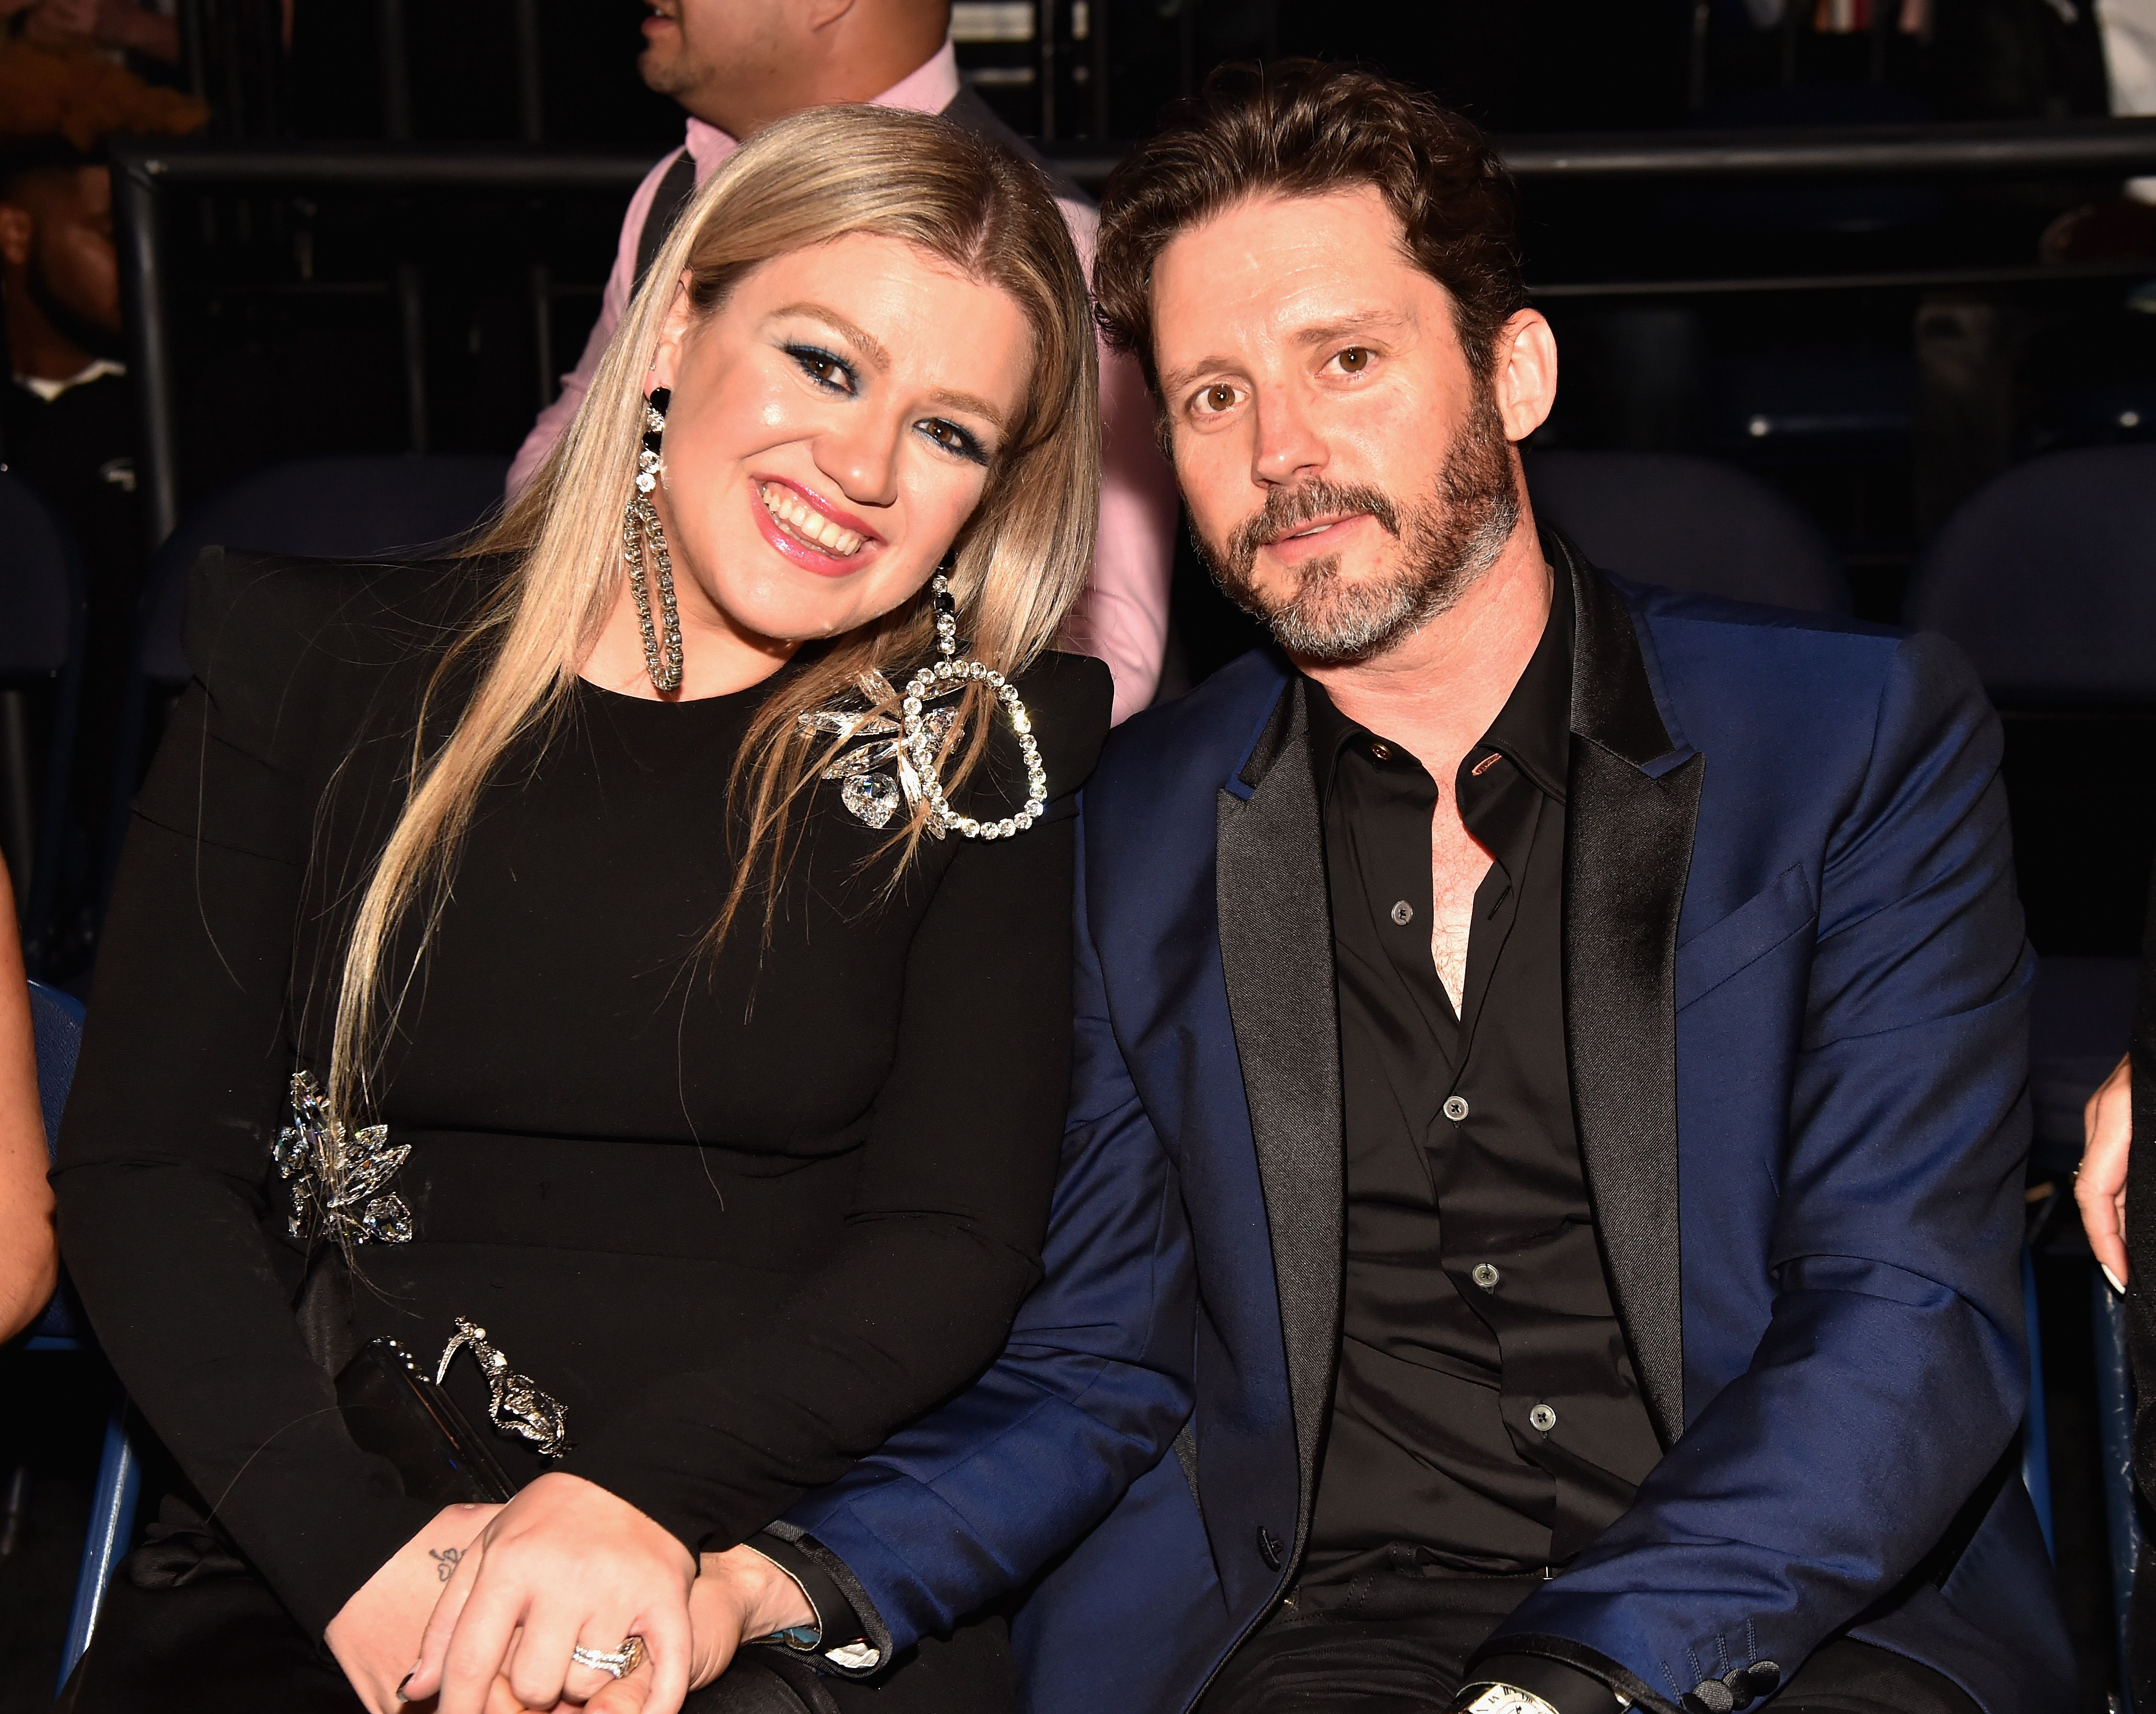 Kelly Clarkson Revealed How Often She and Her Husband Have Sex